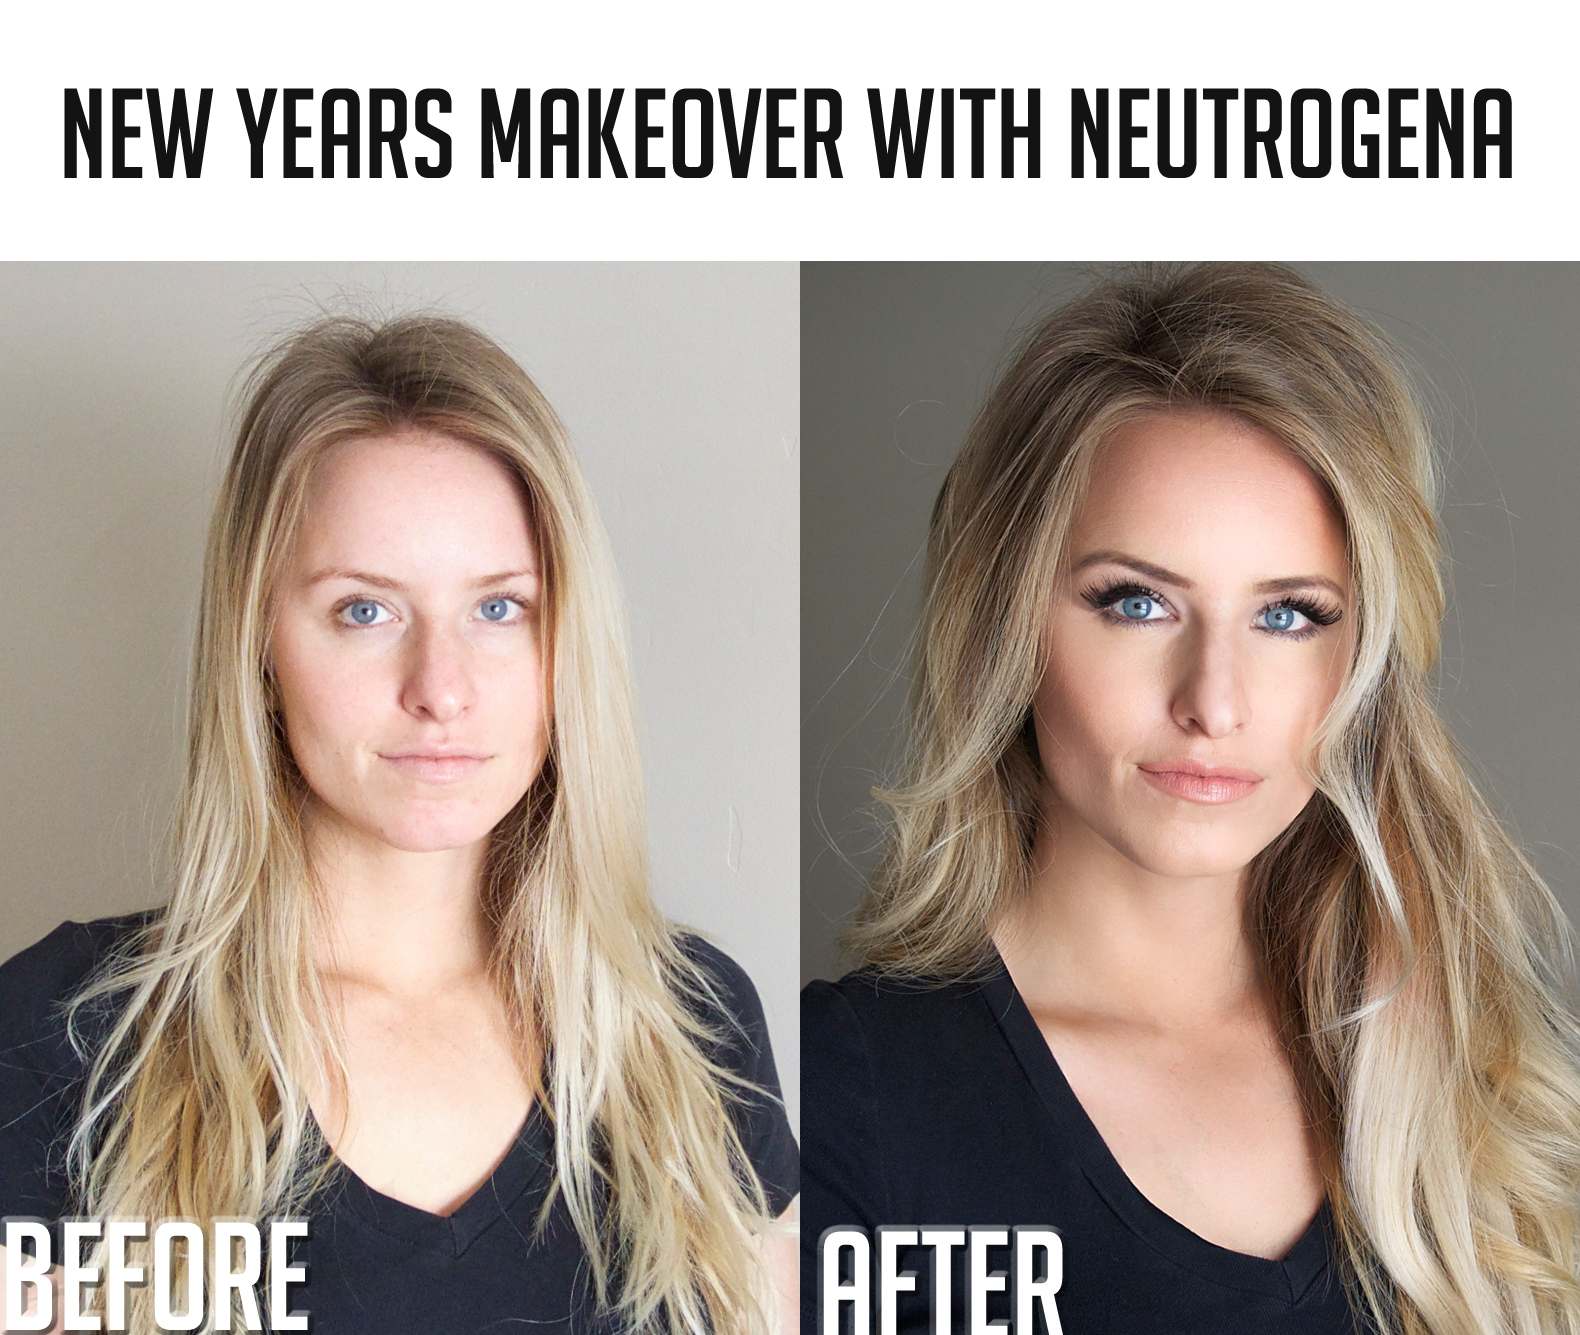 Glamourous, yet not overdone New Years look using Neutrogena products. #facetheholiday #ad #cb